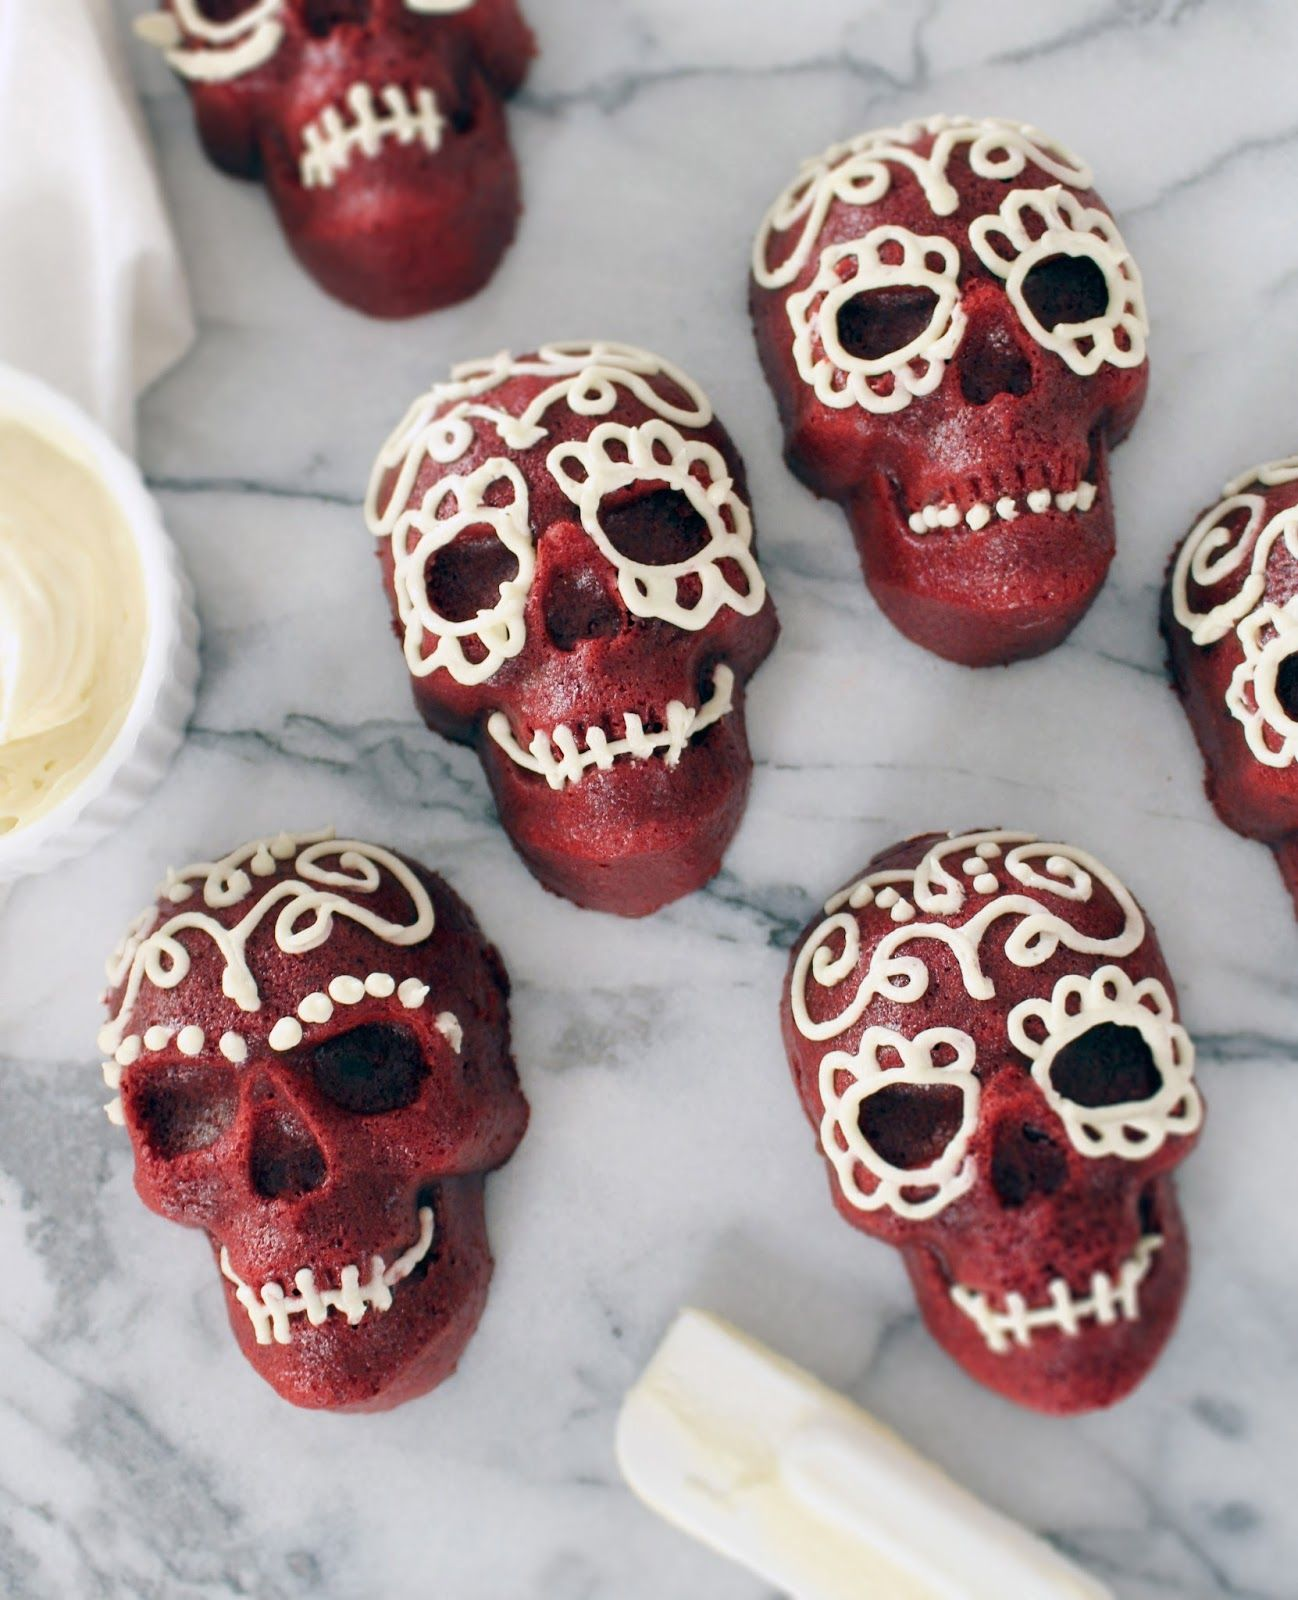 Here's the recipe for preparing these scary mexican skulls cakes! #recipe #scary #mexican #skulls #cakes